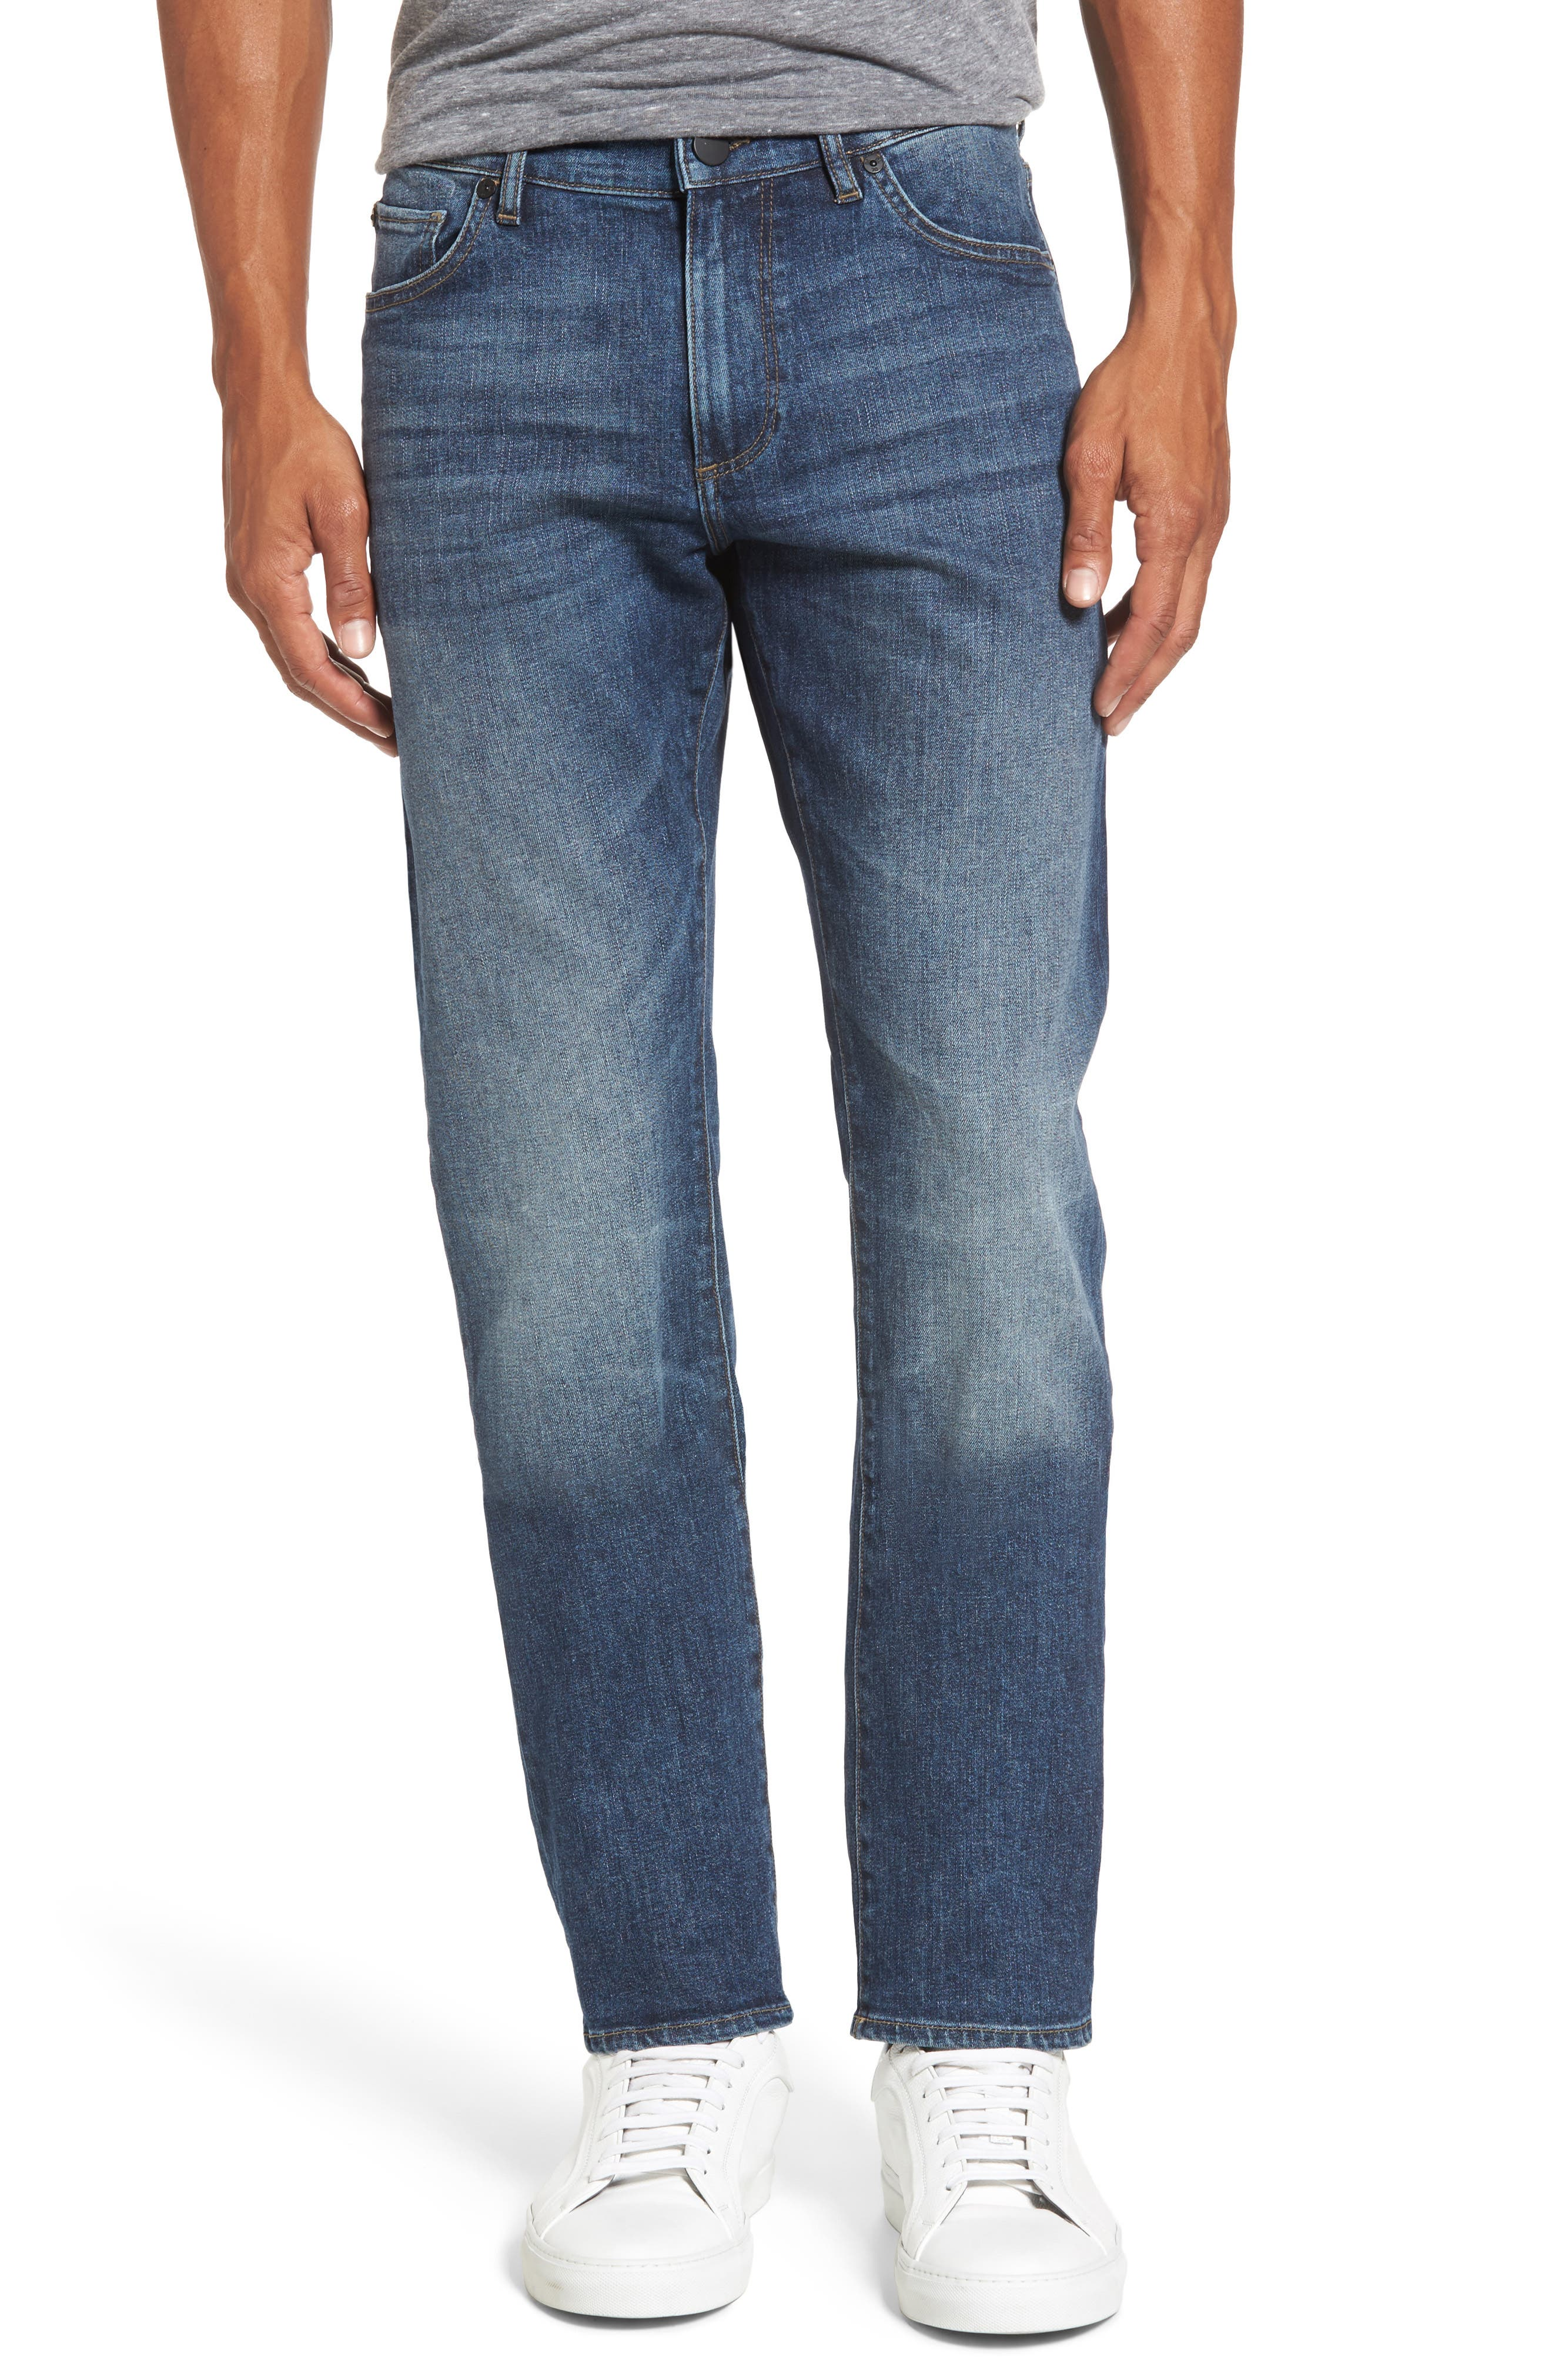 Russell Slim Straight Leg Jeans,                             Main thumbnail 1, color,                             405